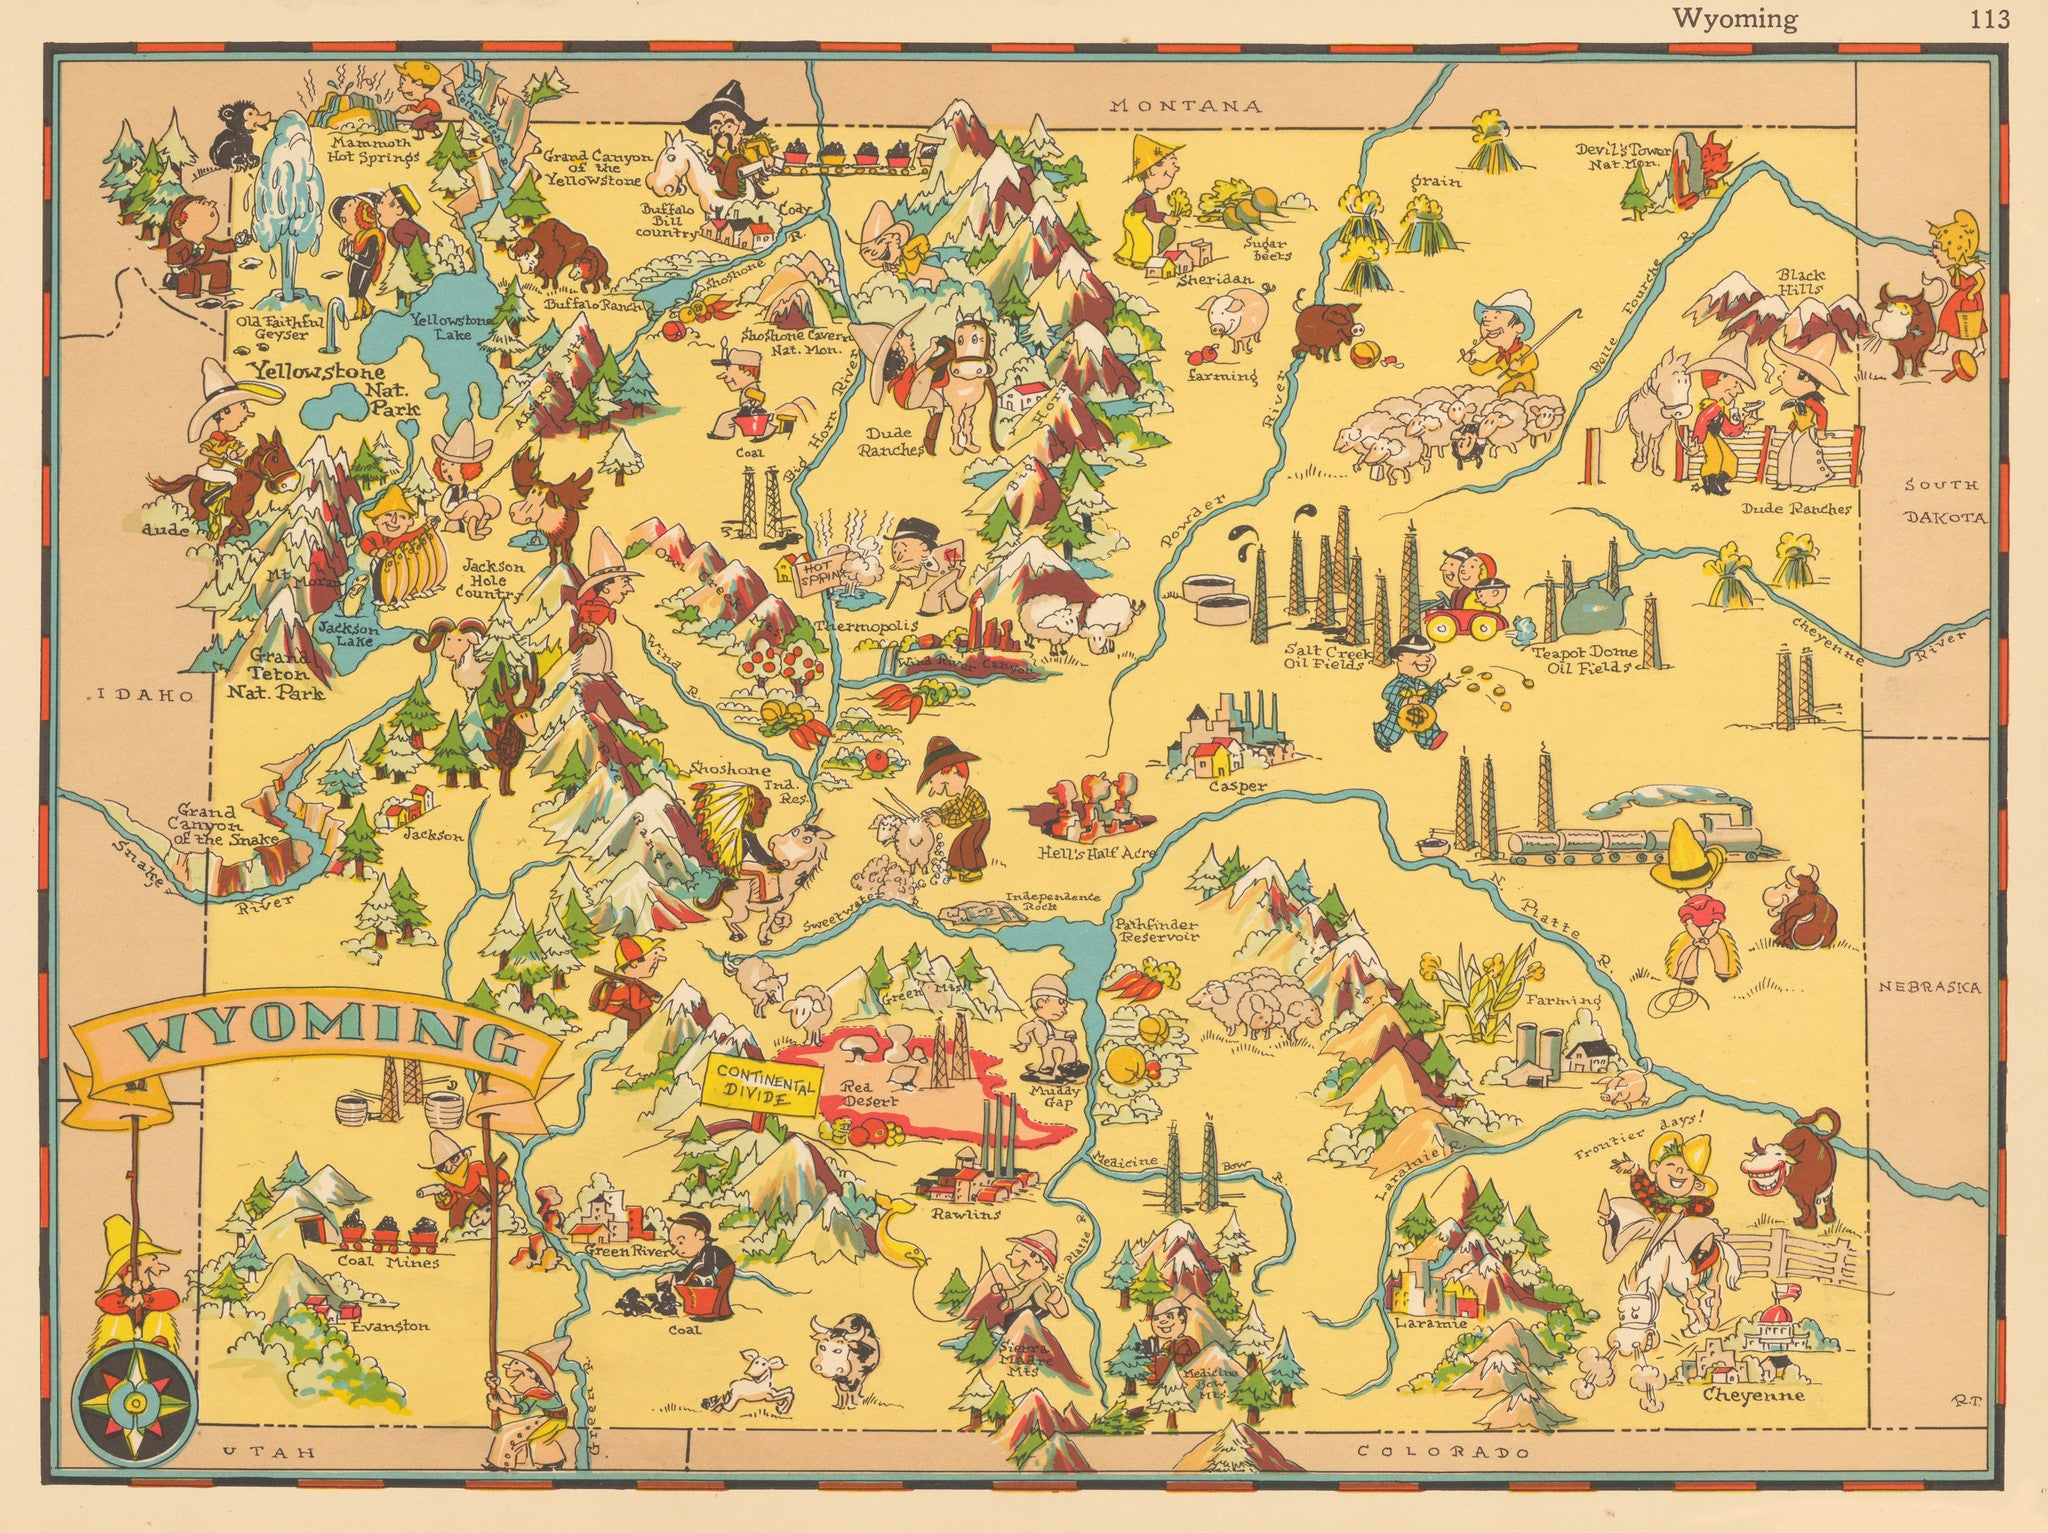 Decorative map of Wyoming by Ruth Taylor 1935 - nwcartographic.com